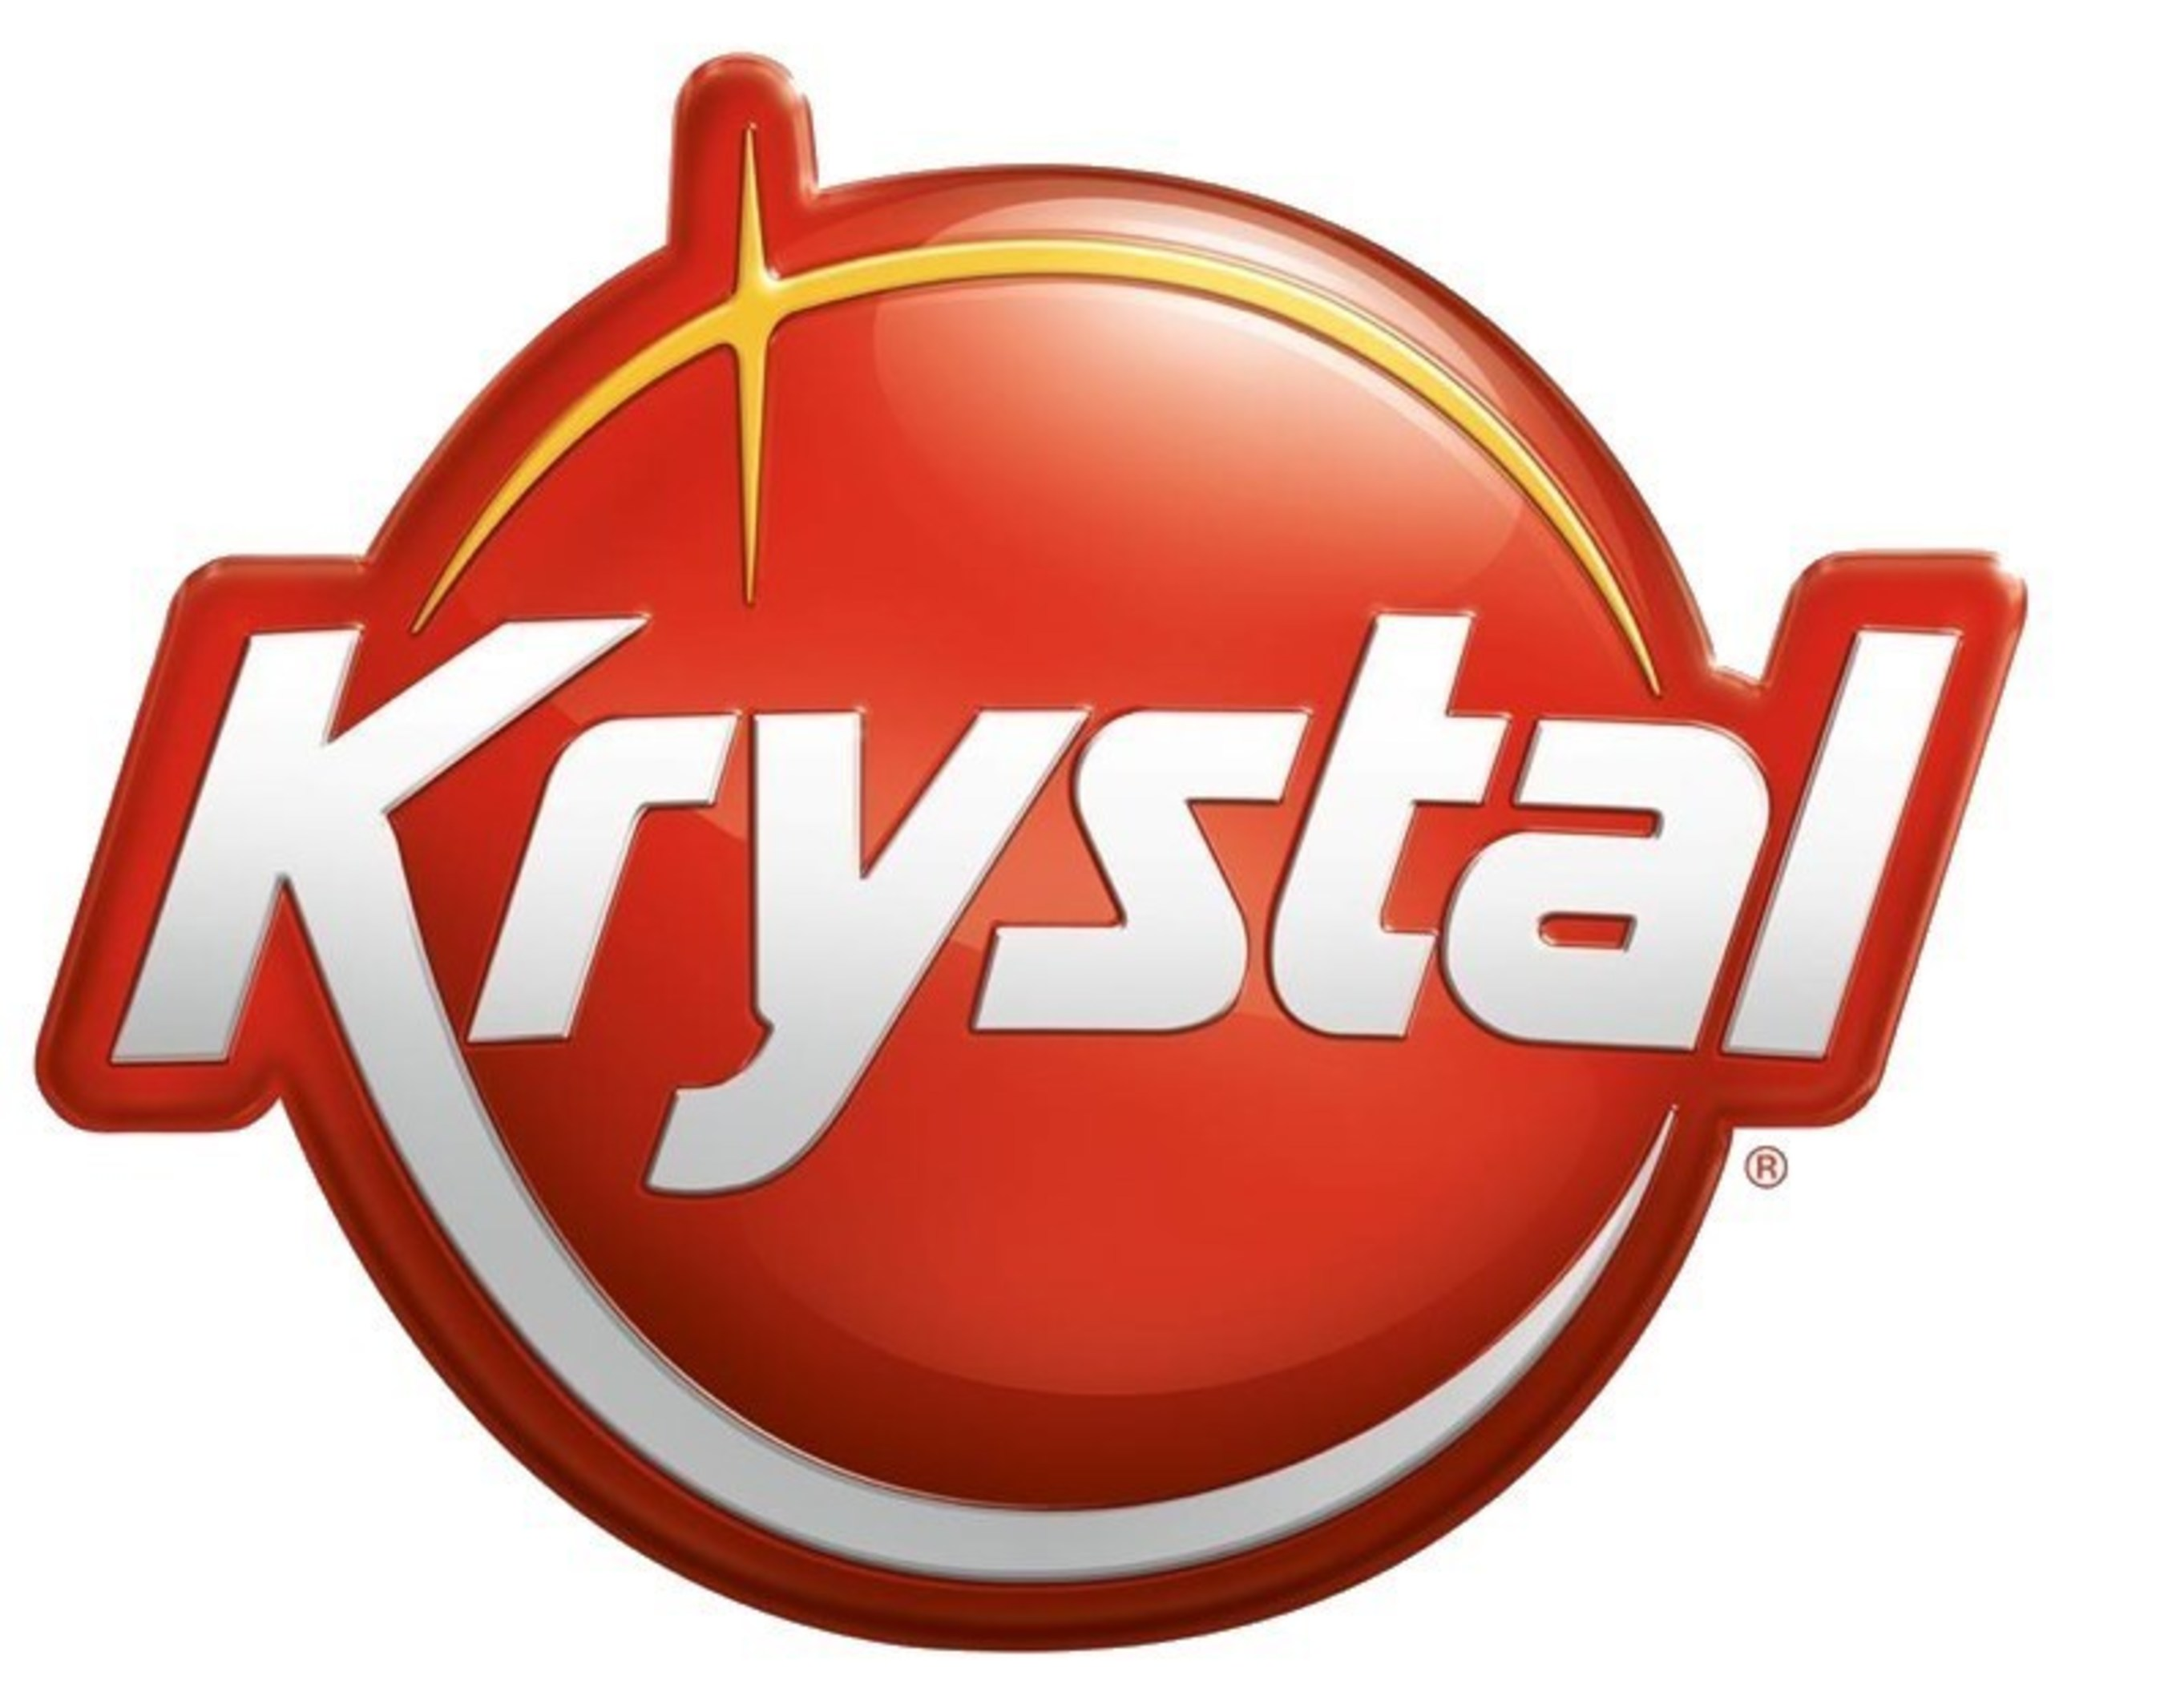 Krystal® Is Off To the Races This Summer with Coca-Cola® Roadie Cup Promotion